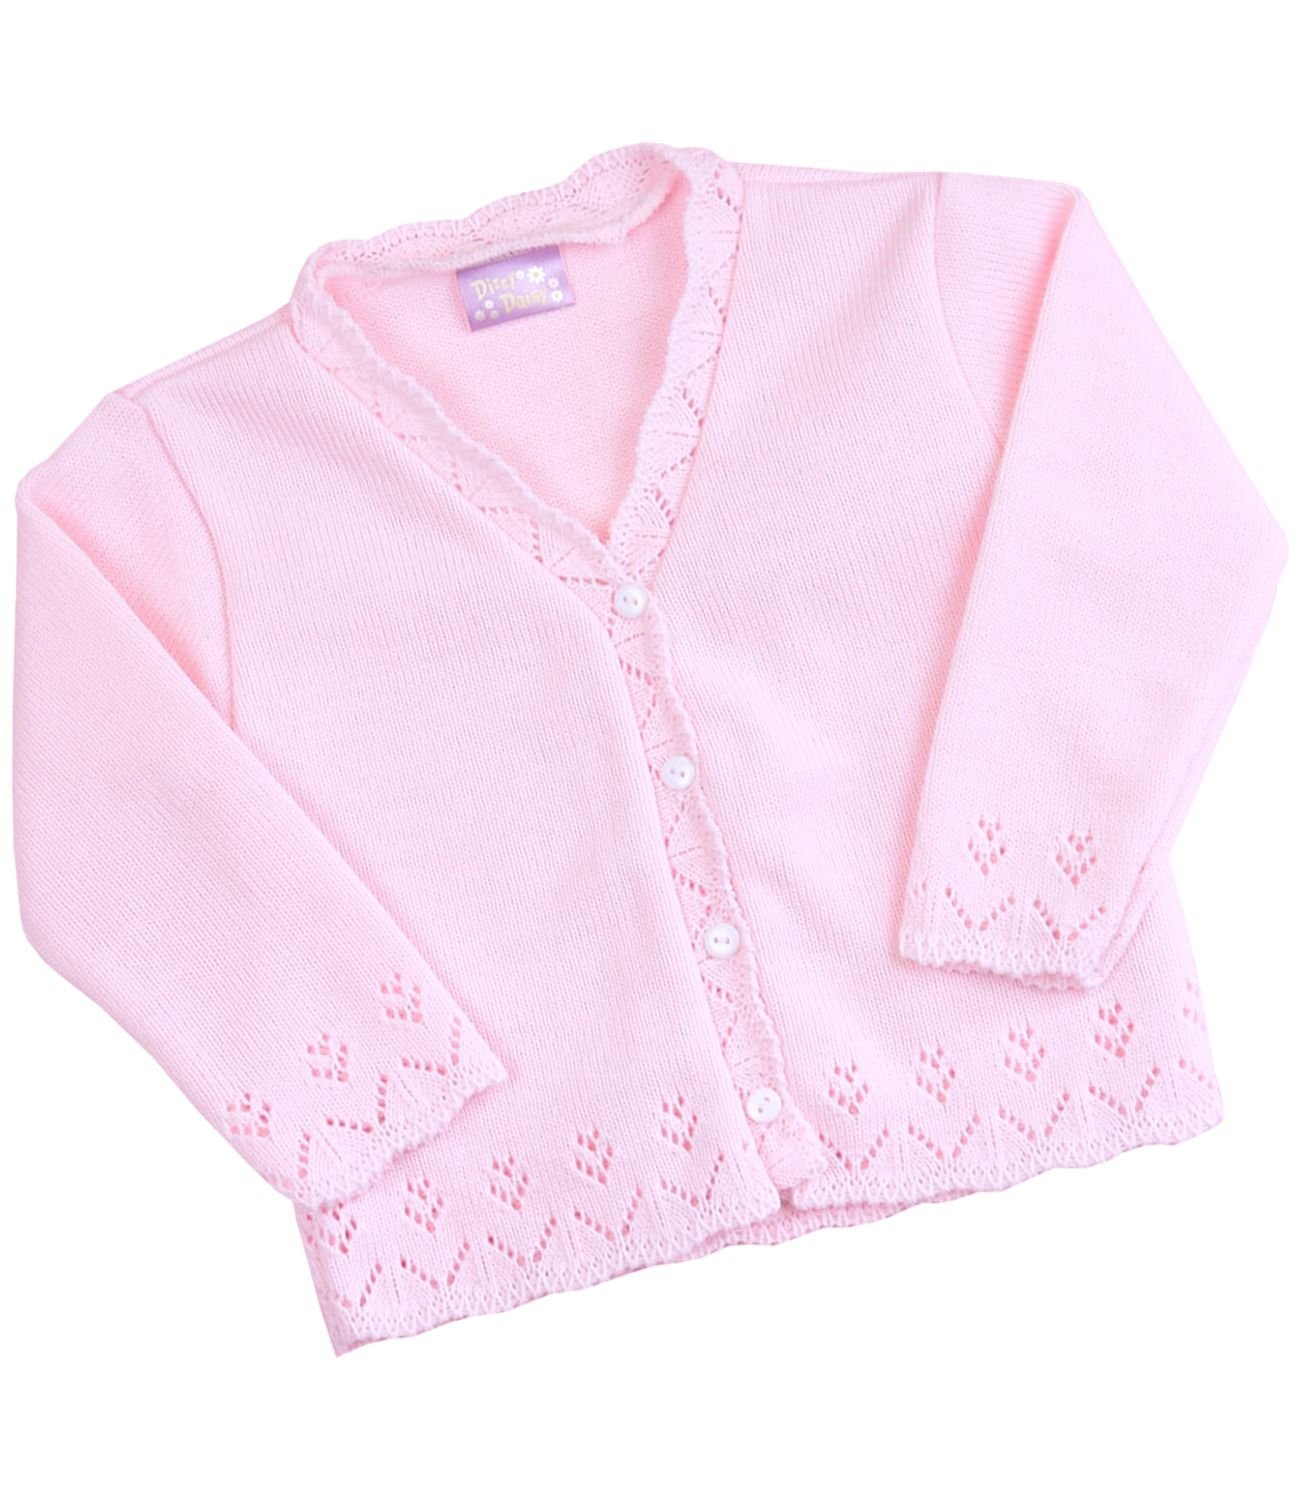 BabyPrem Girls Boys Cardigan White Pink Knitted Clothes Toddler 2 - 6 Years BEE022